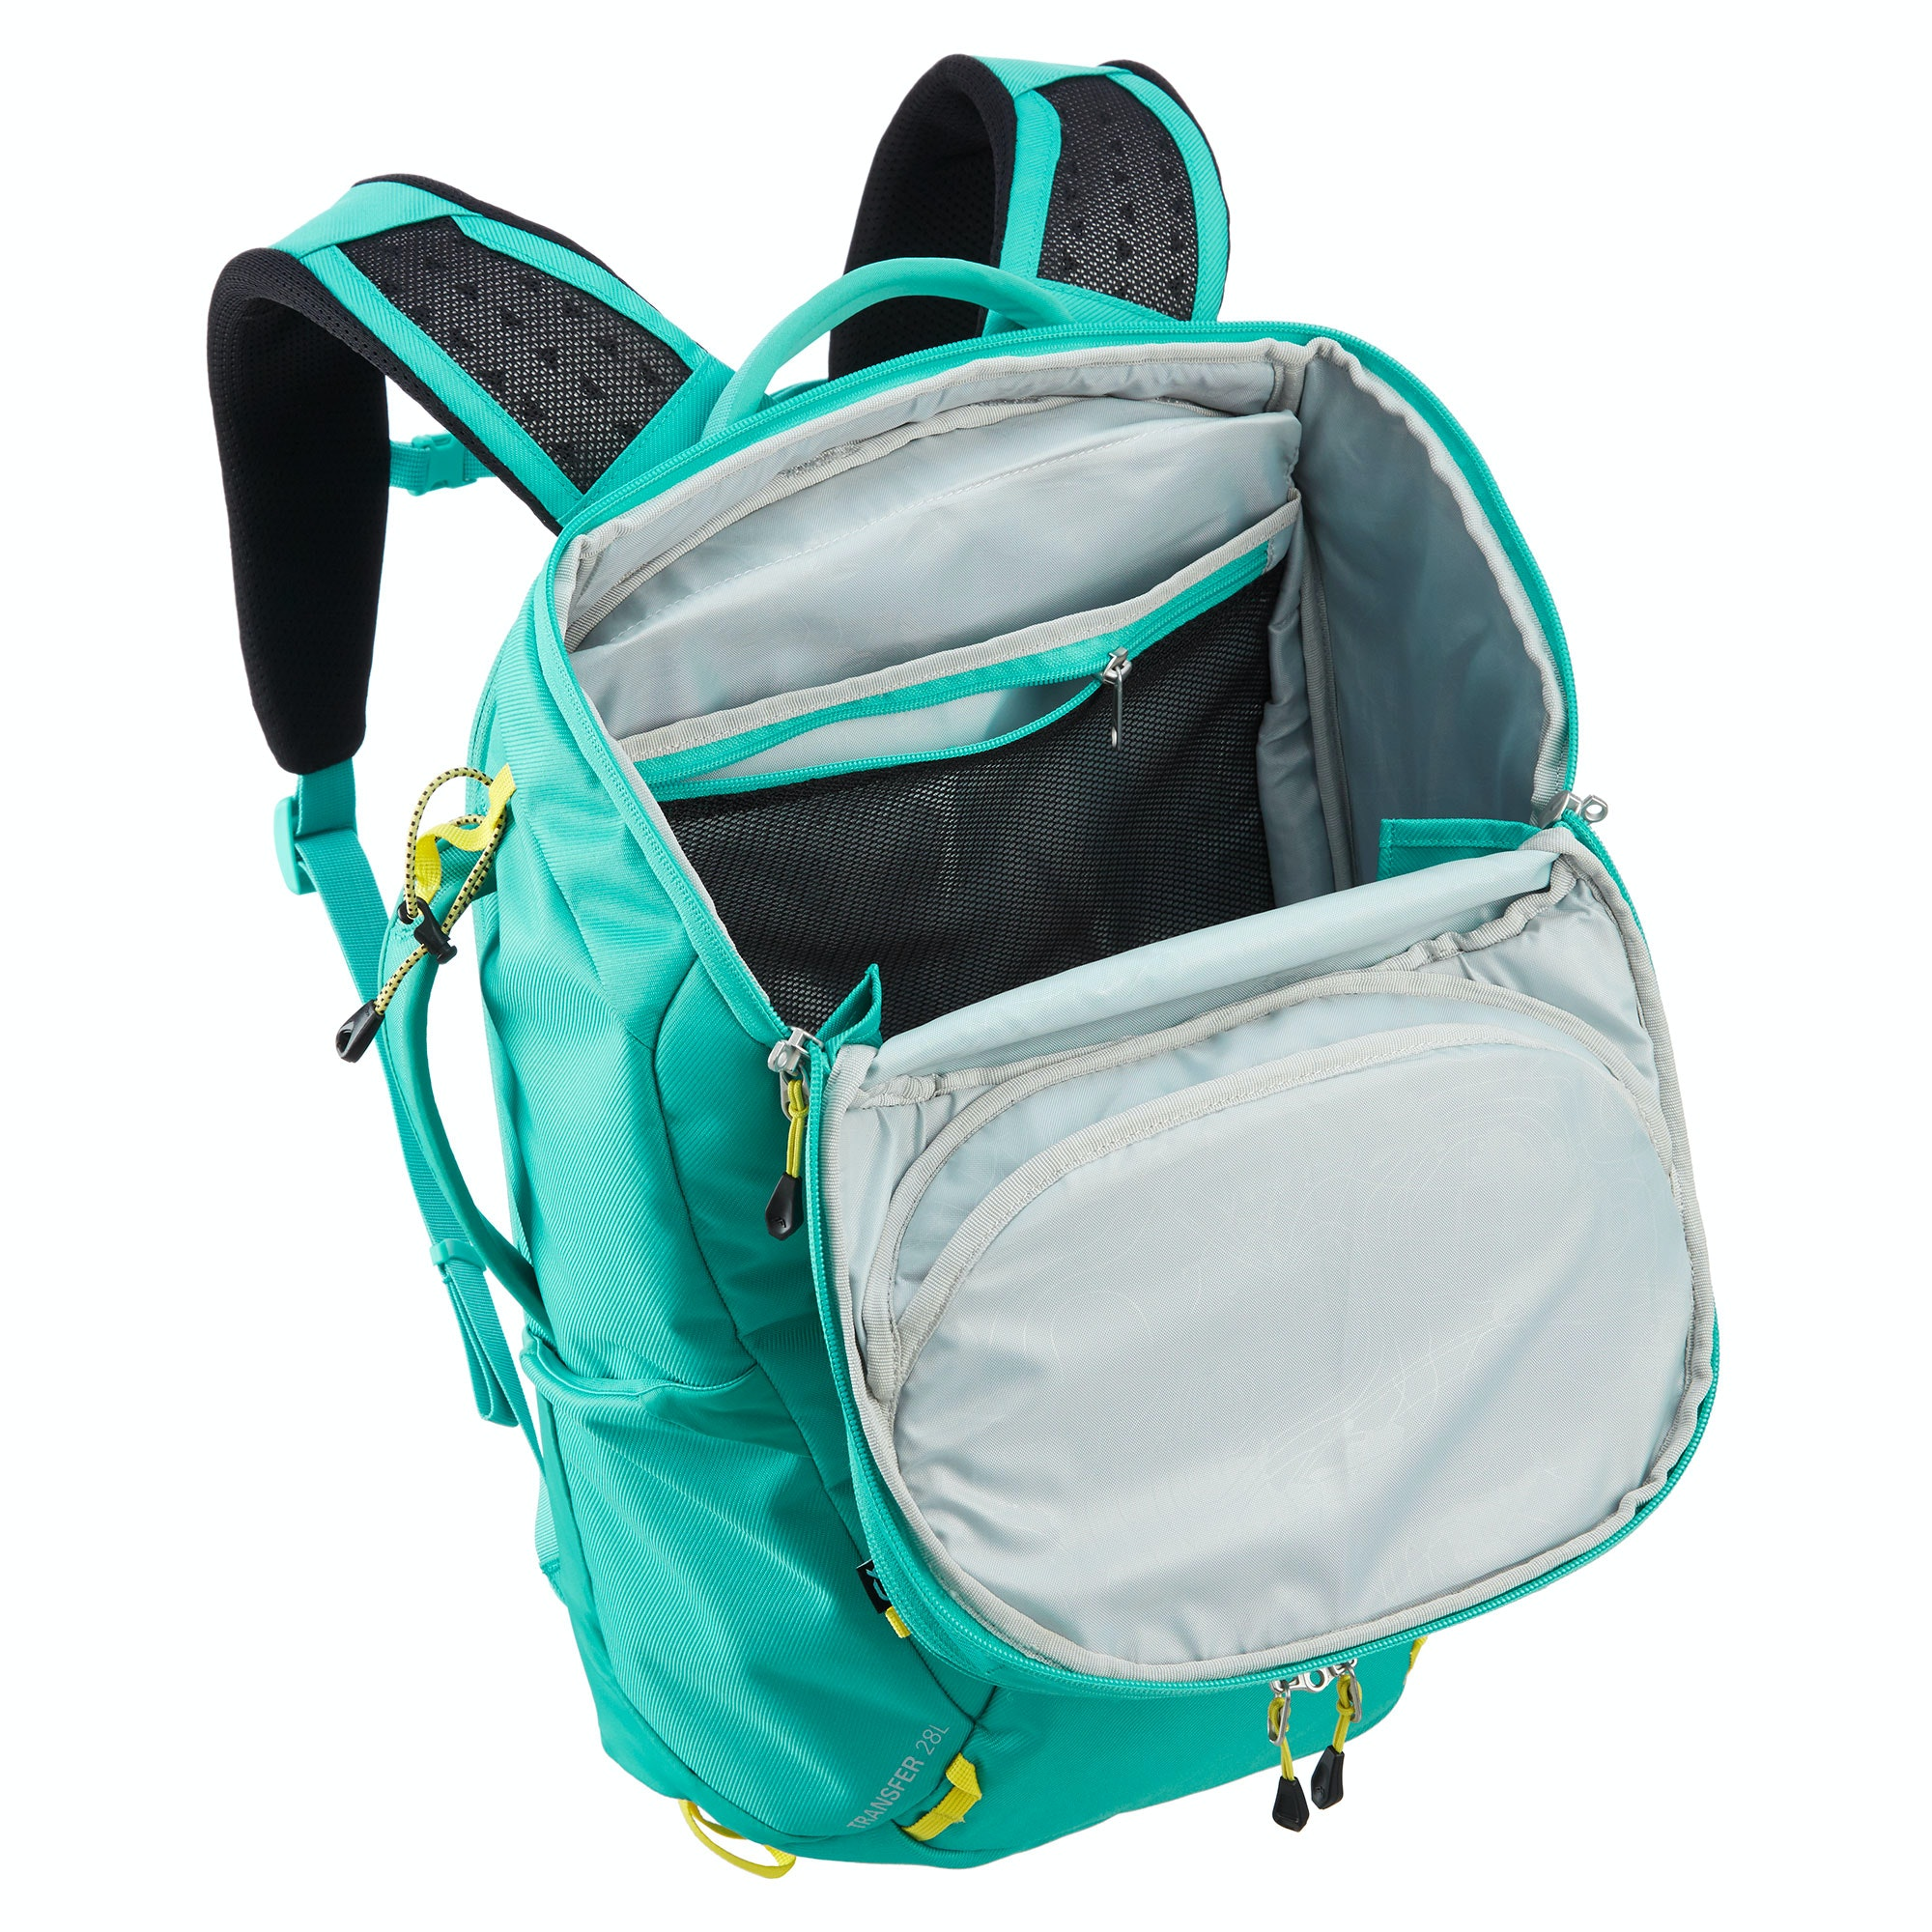 NEW-Kathmandu-Transfer-28L-Commuter-Bag-Laptop-Backpack-Rucksack-Travel-Pack-v3 thumbnail 14